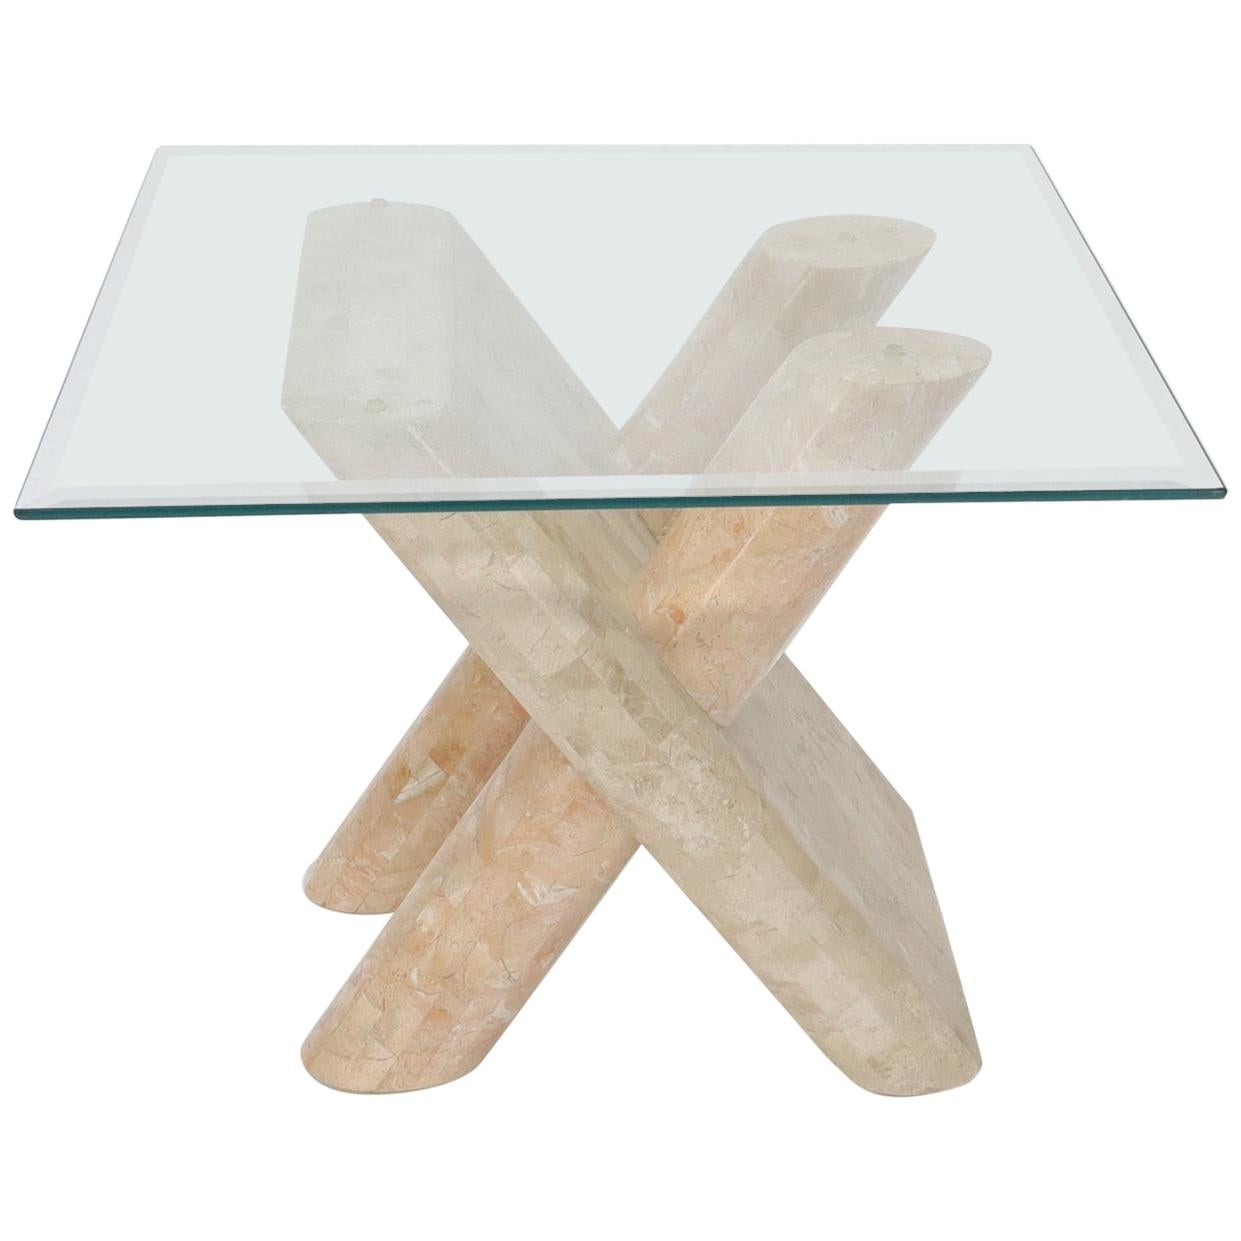 Tessellated Stone Rounded X-Shape Base Side Occasional Square Glass Top Table